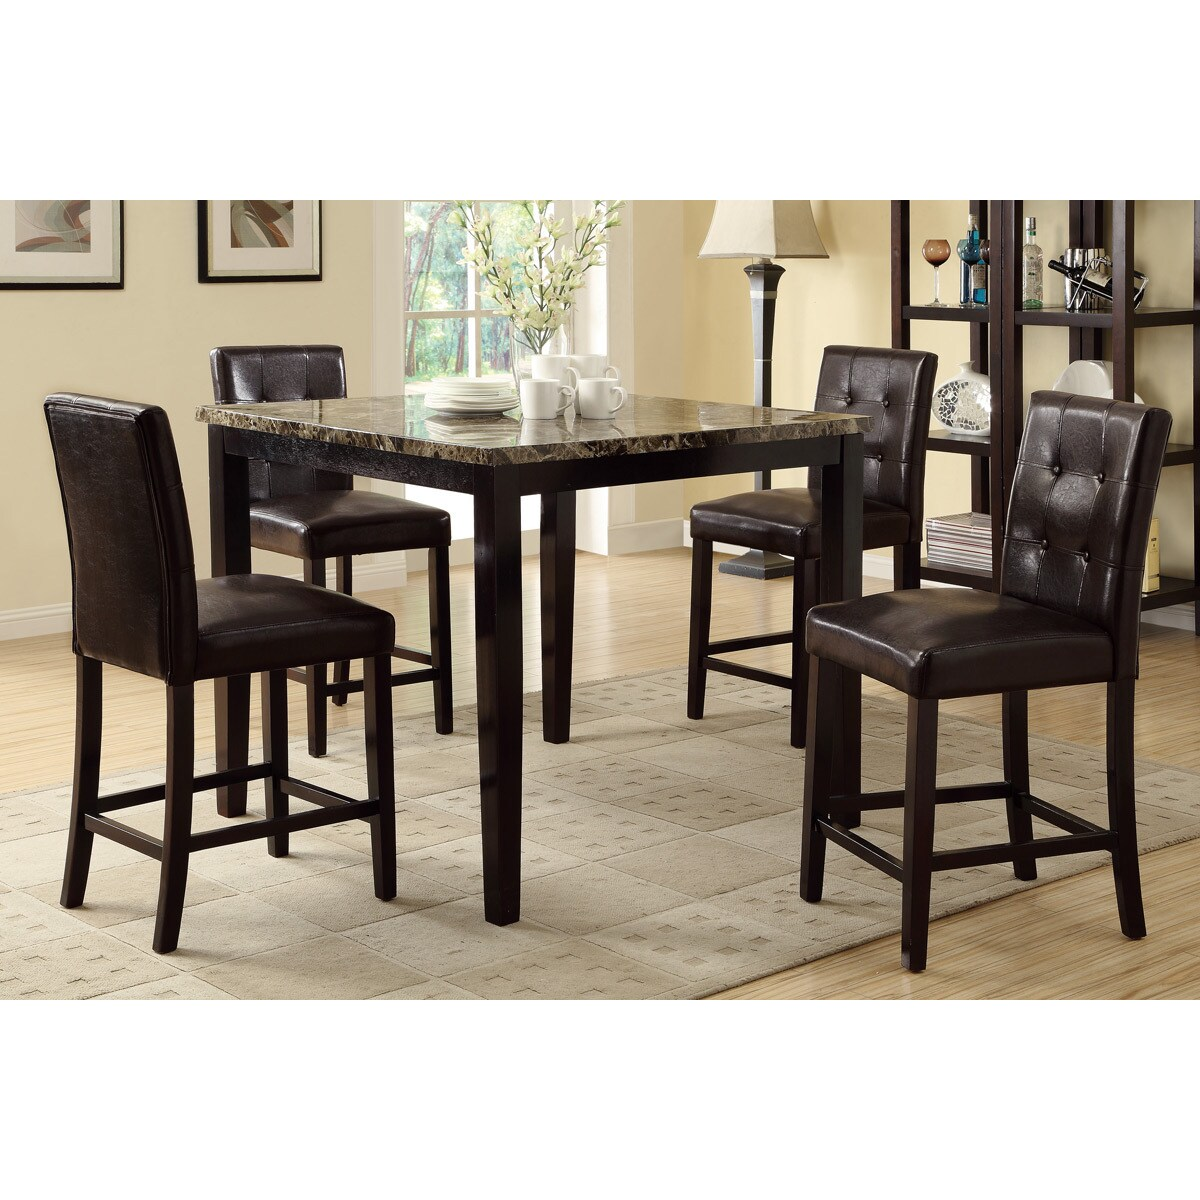 Bayfield 5-piece Counter Height Dining Set (Bayfield 5-pi...